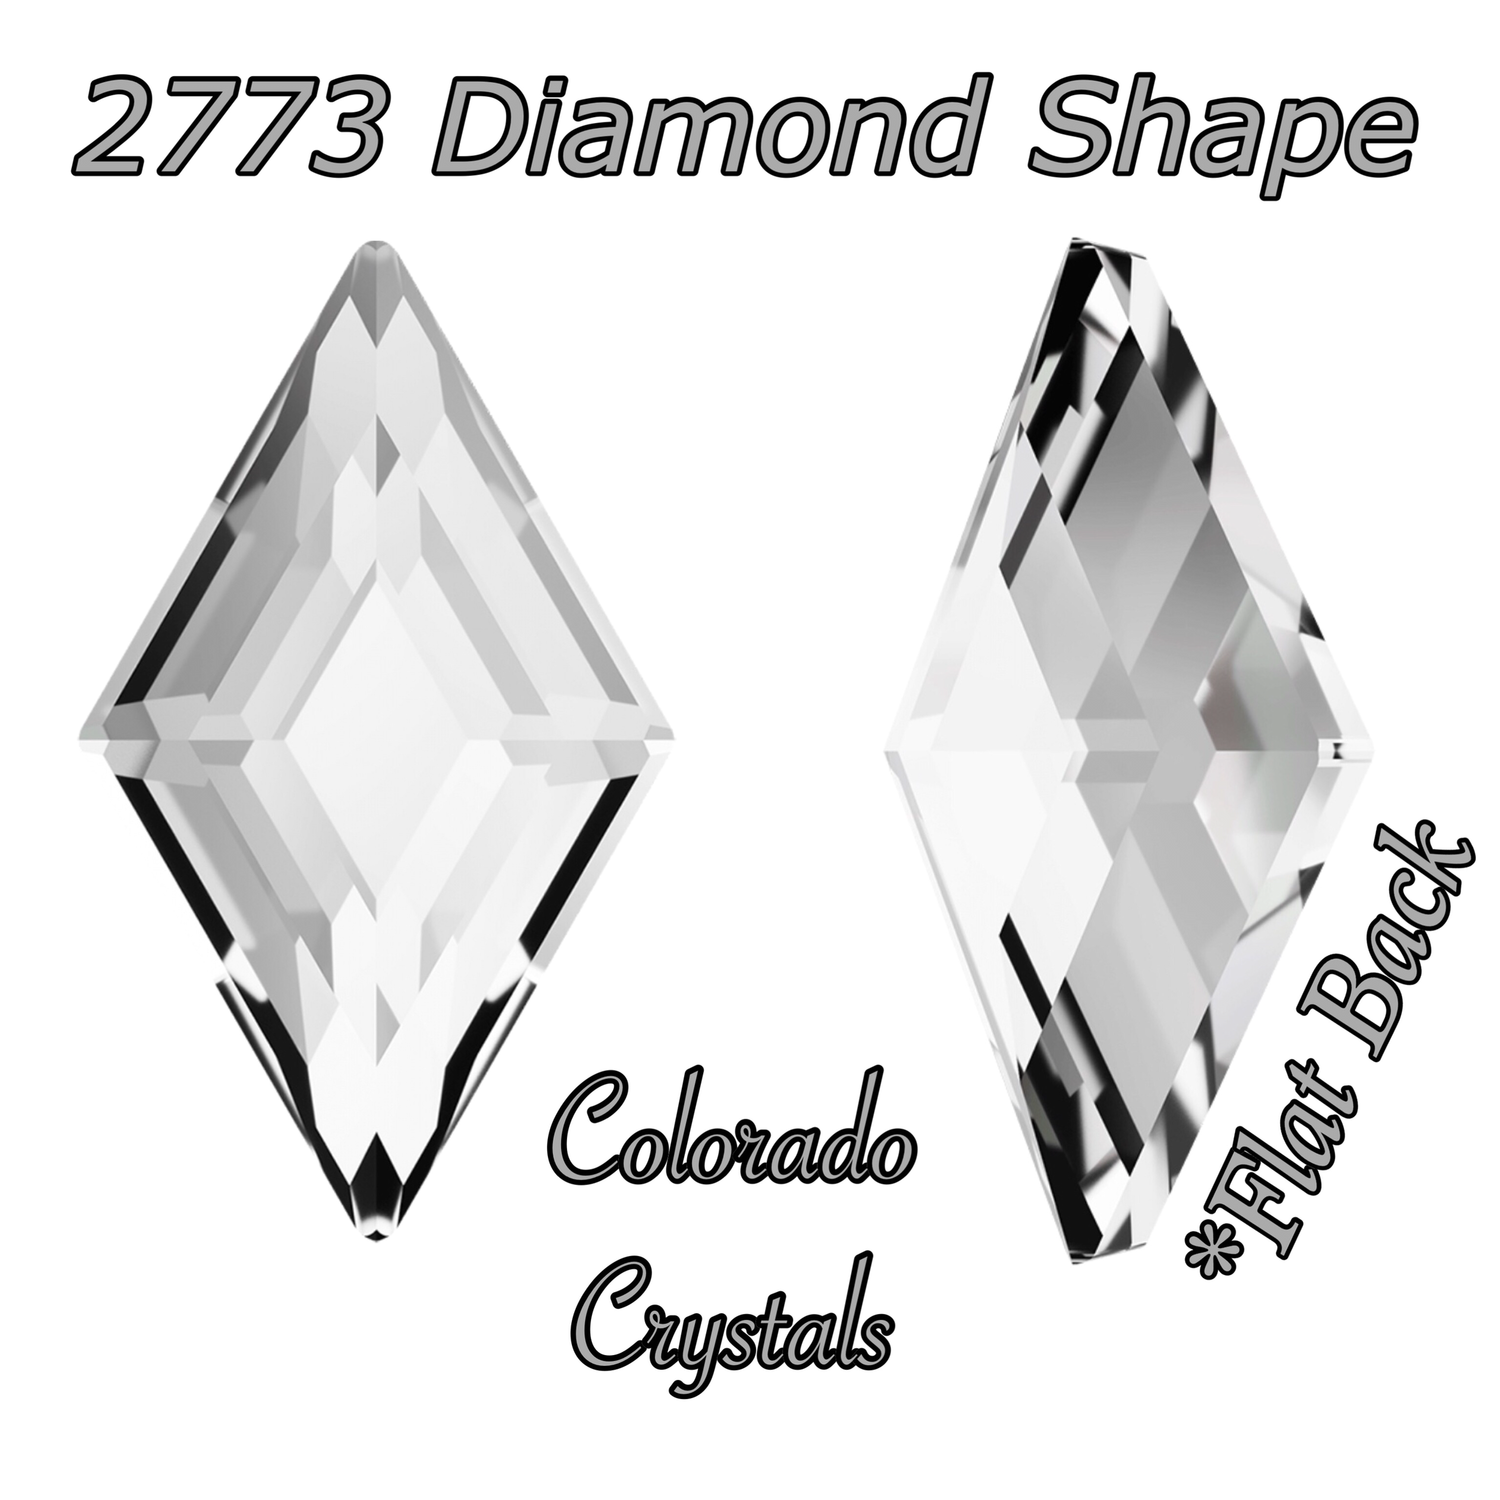 2773 Diamond Shape Crystal 5x3mm Flat back Nail art size